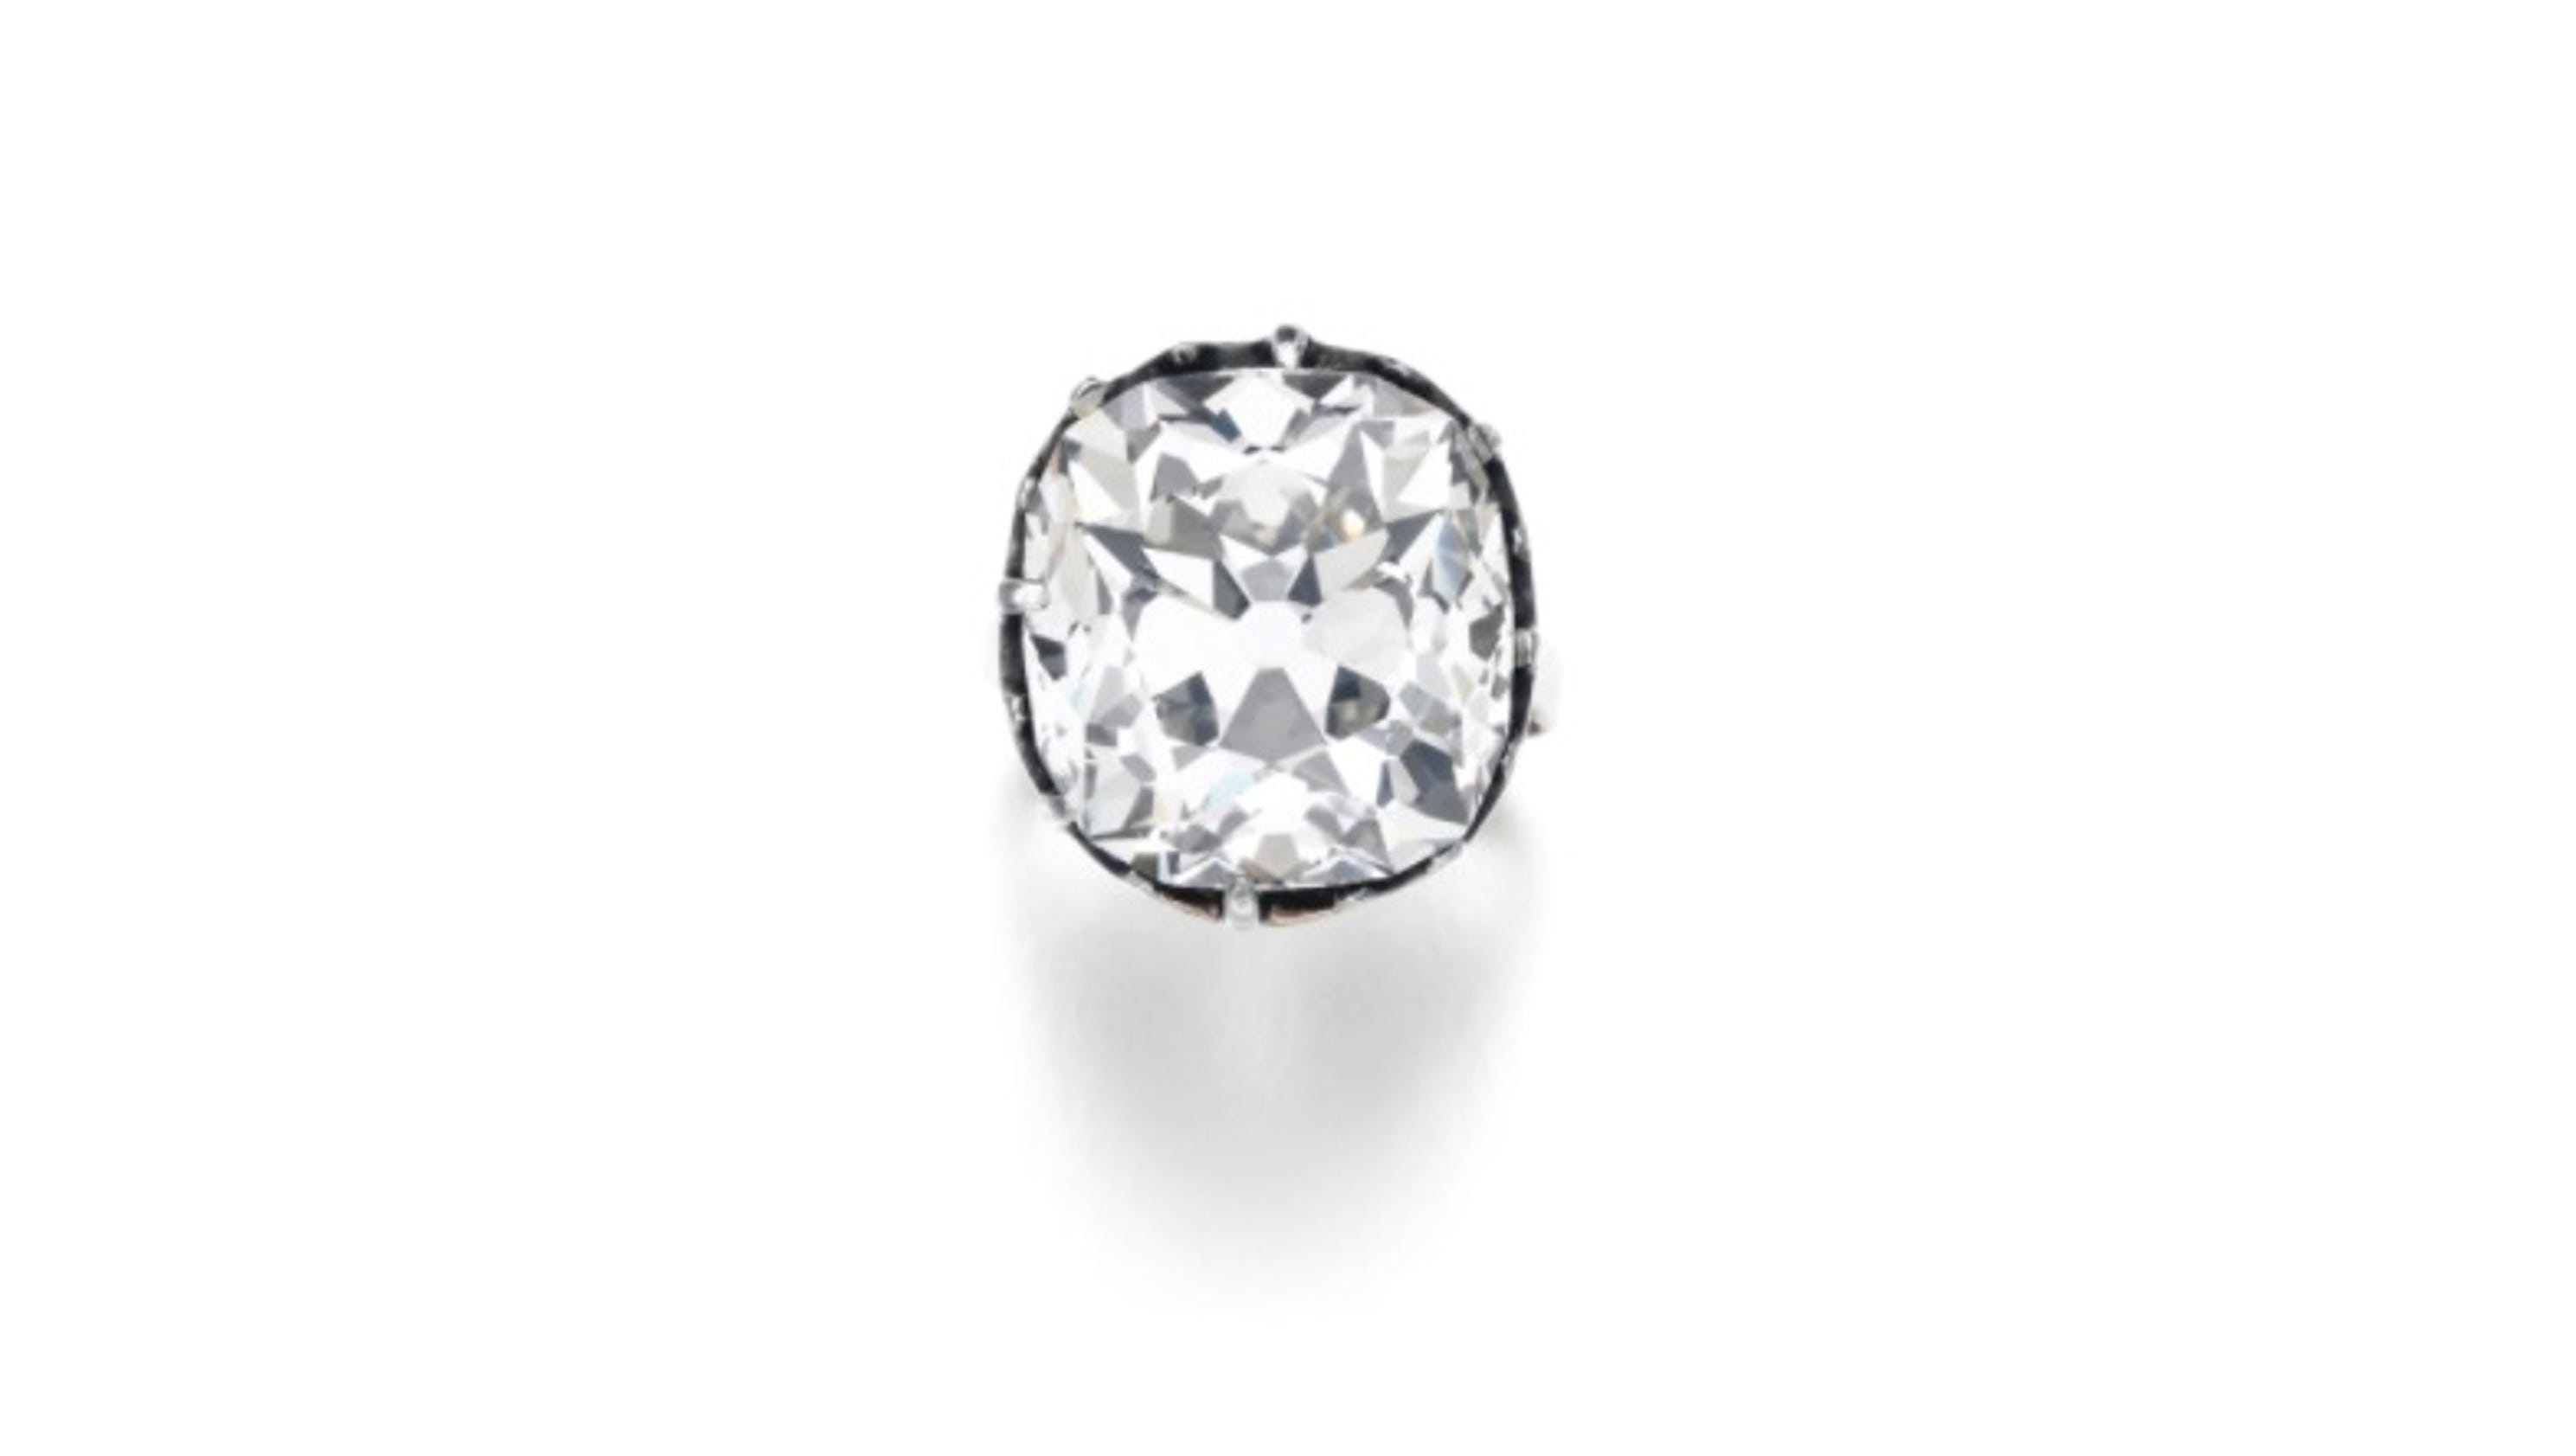 Costume Jewelry Diamond Ring Purchased For 13 S More Than 800k At Sotheby Auction